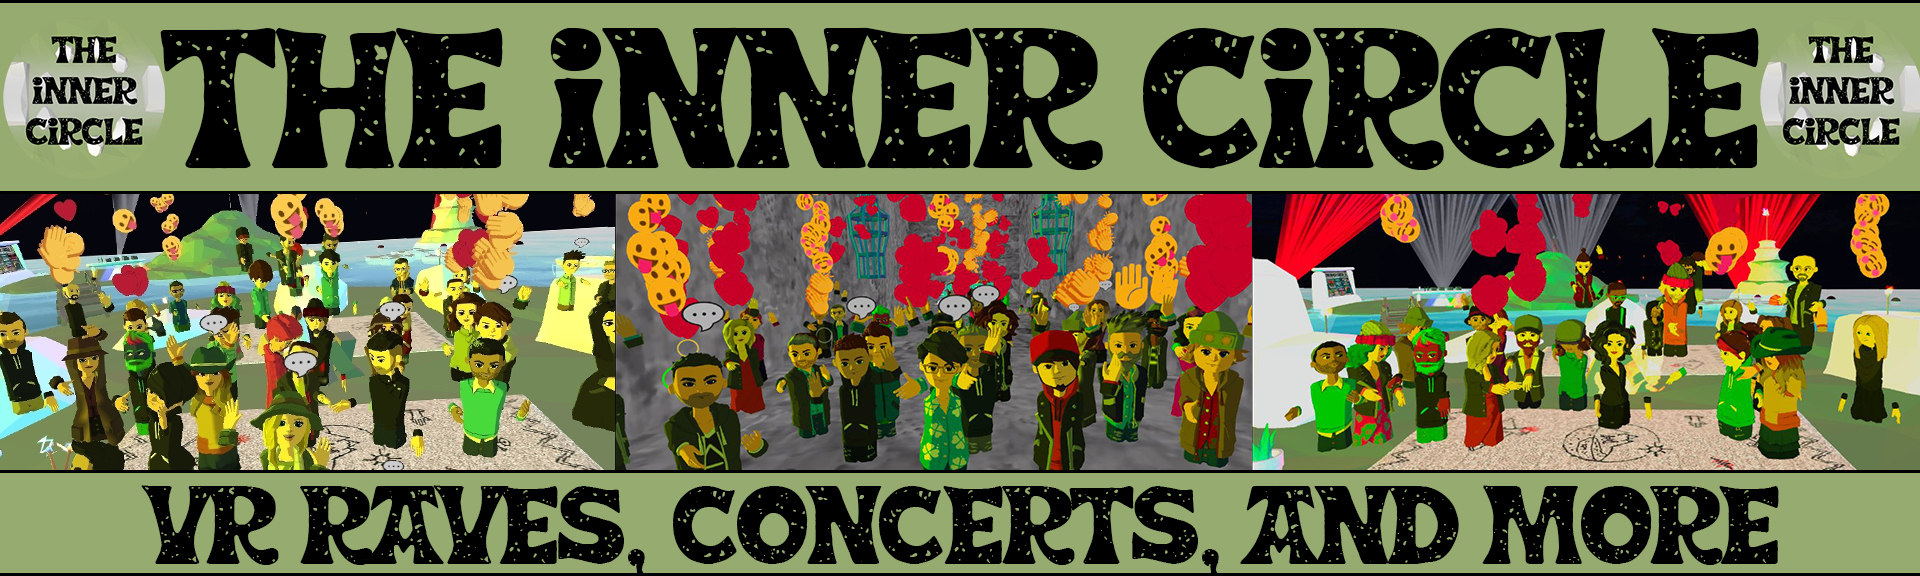 The inner circle universe banner 7